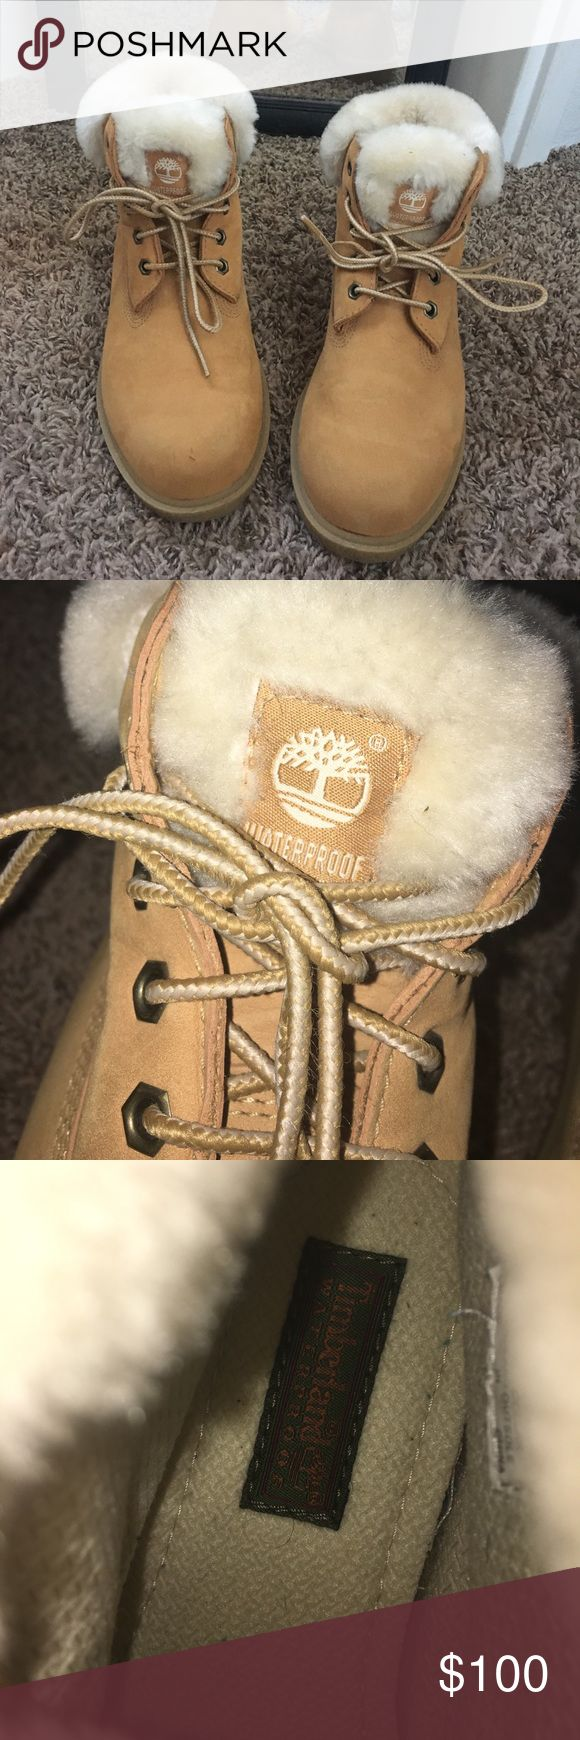 Only worn once timberland boots Original tan color has white fur on the top of the boot water proof never worn original shoe laces. ( US SIZE 3) UK SIZE 2.5 EU SIZE 35 Timberland Shoes Winter & Rain Boots